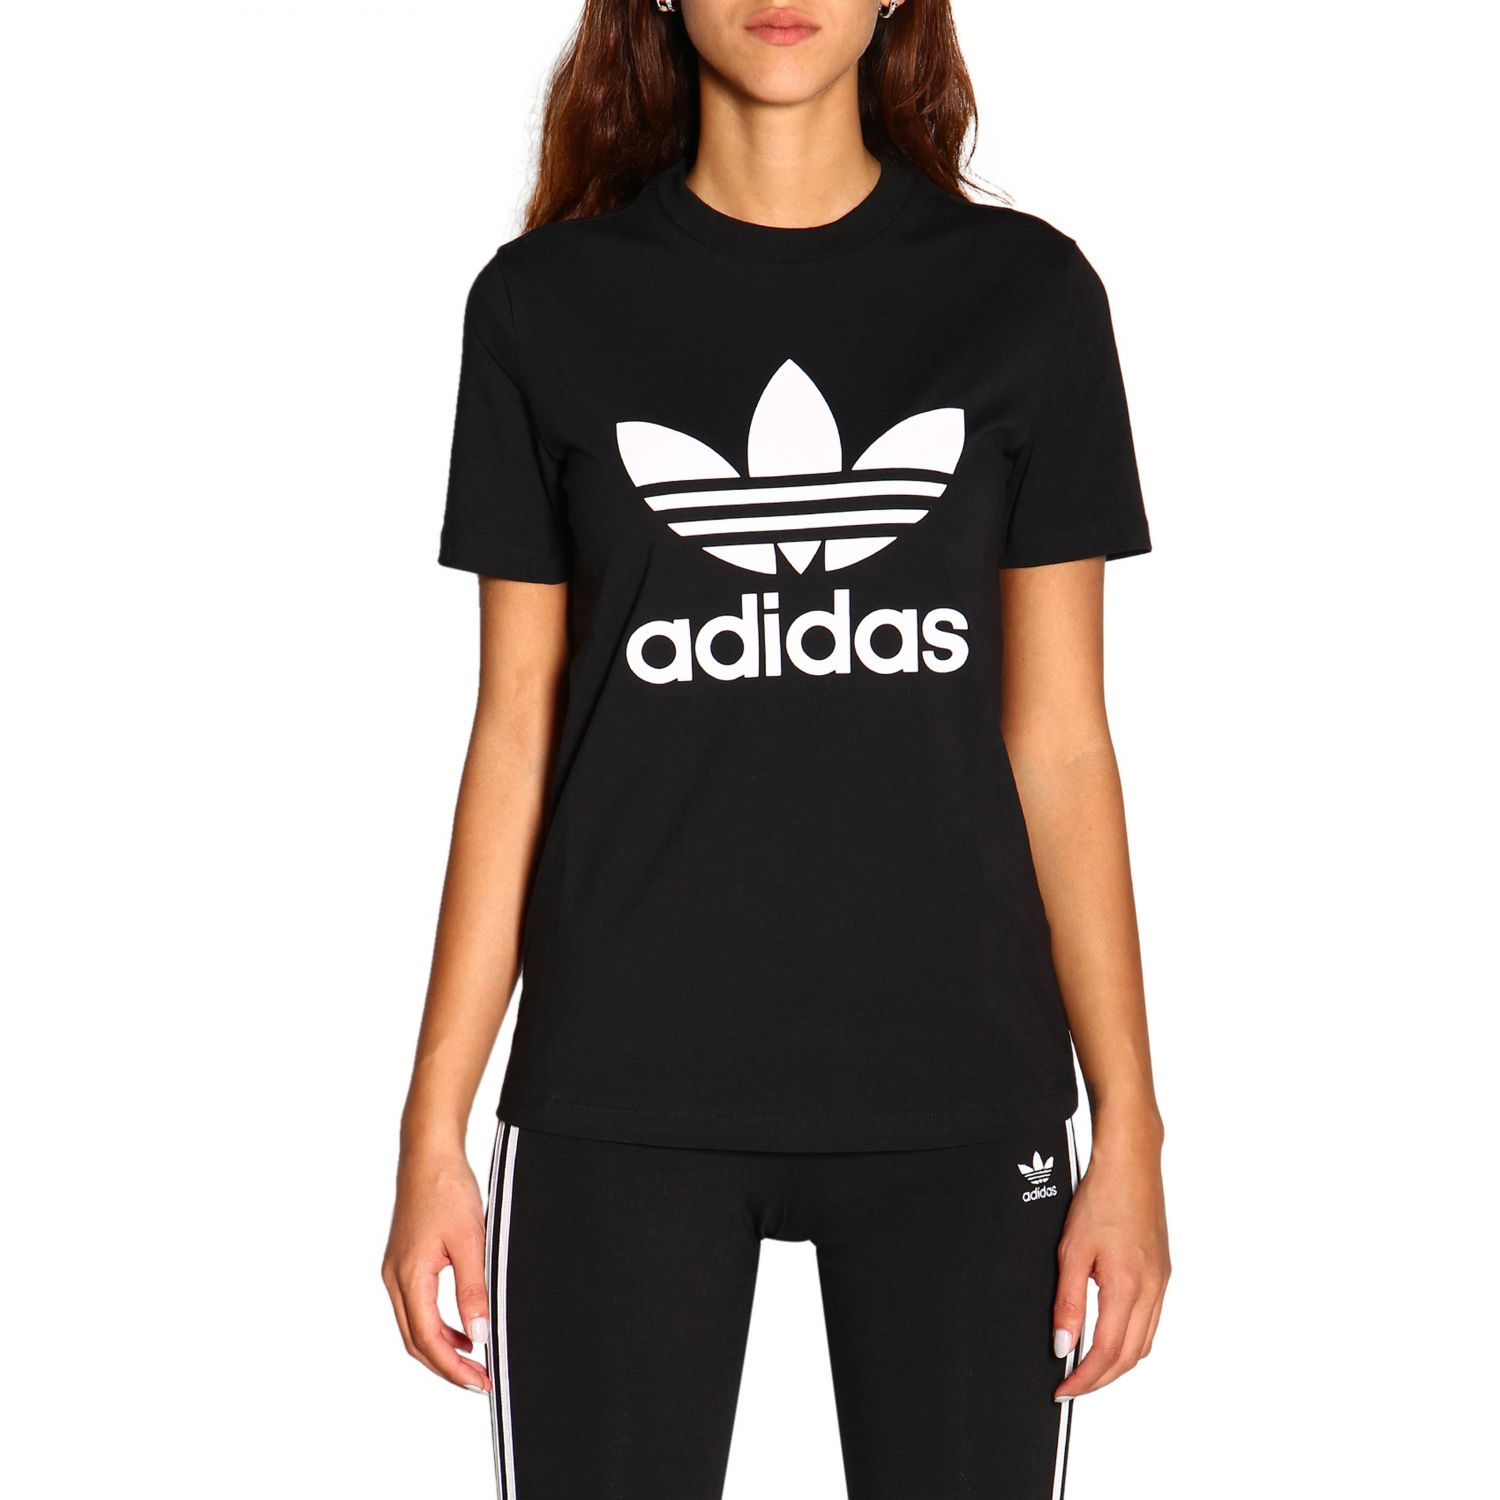 the shirt adidas fille